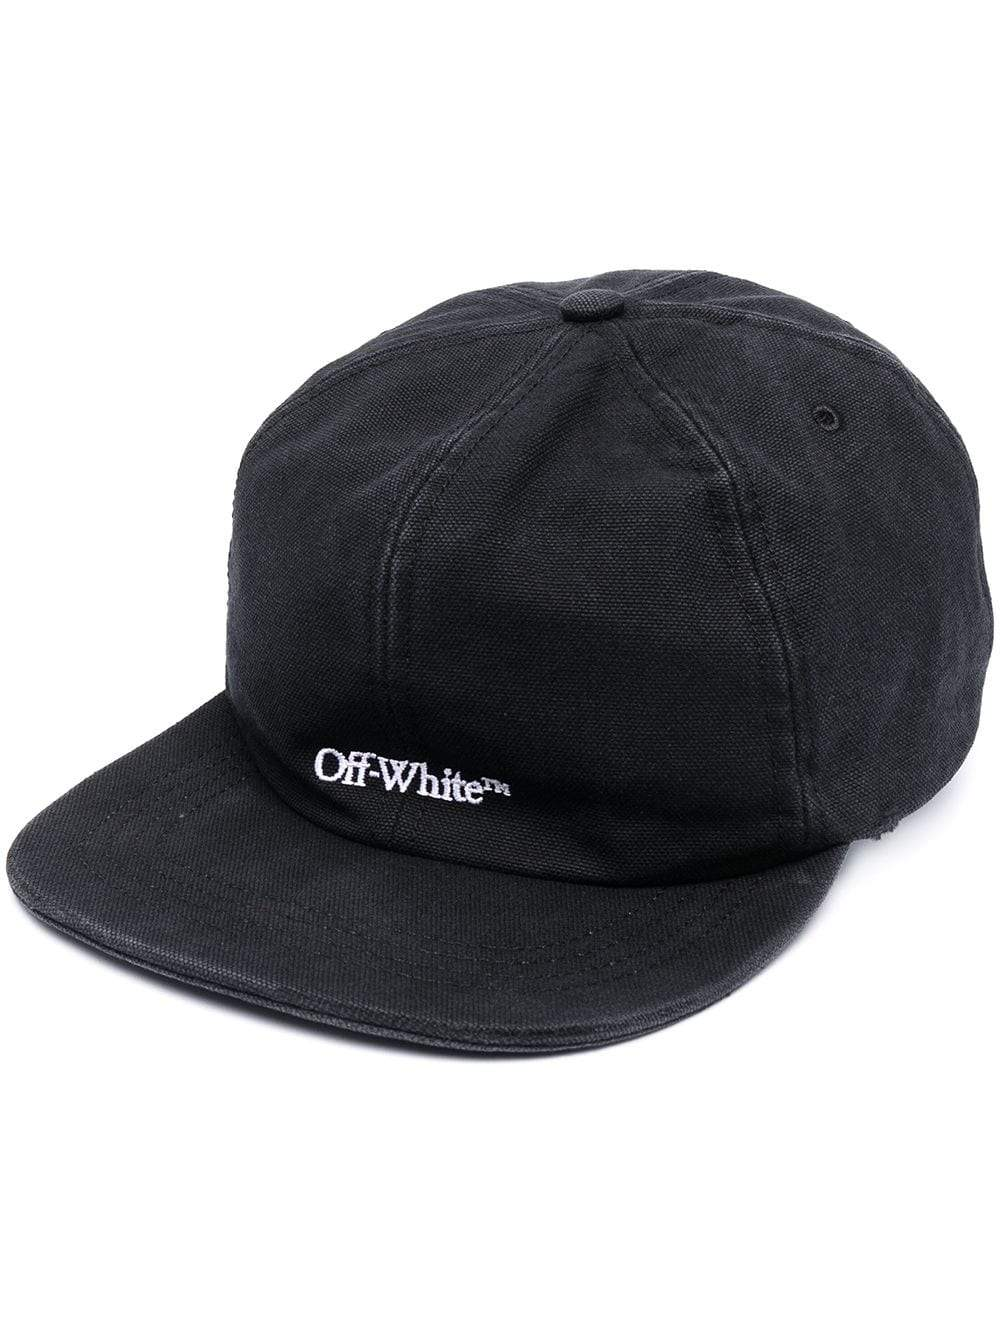 OFF-WHITE Logo Embroidered Baseball Cap Black